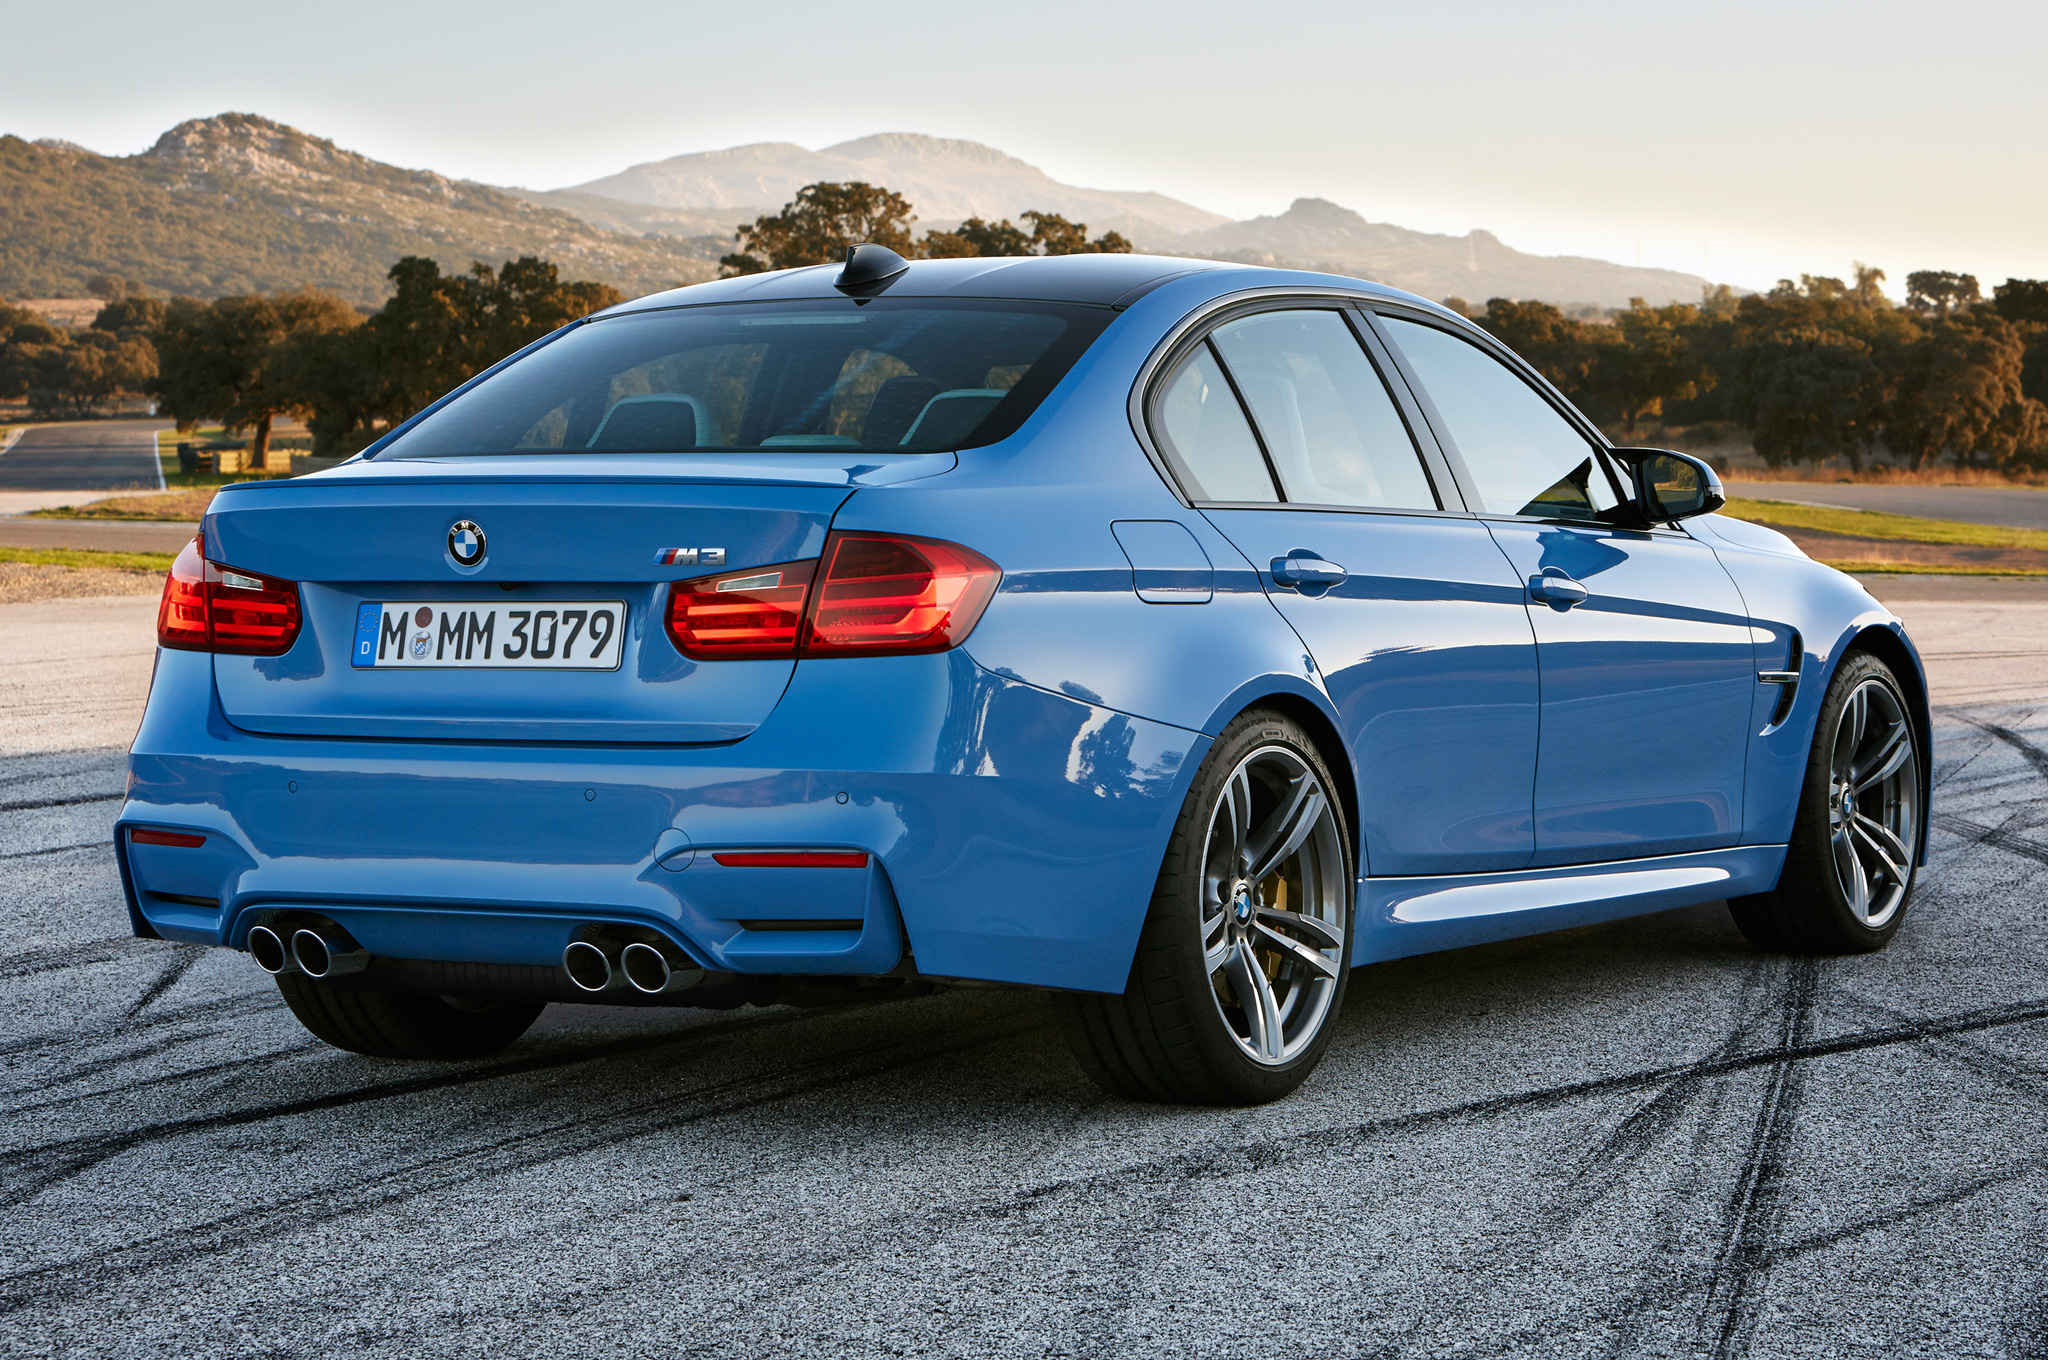 2015 Bmw M3 Rear Exterior (Photo 49 of 55)